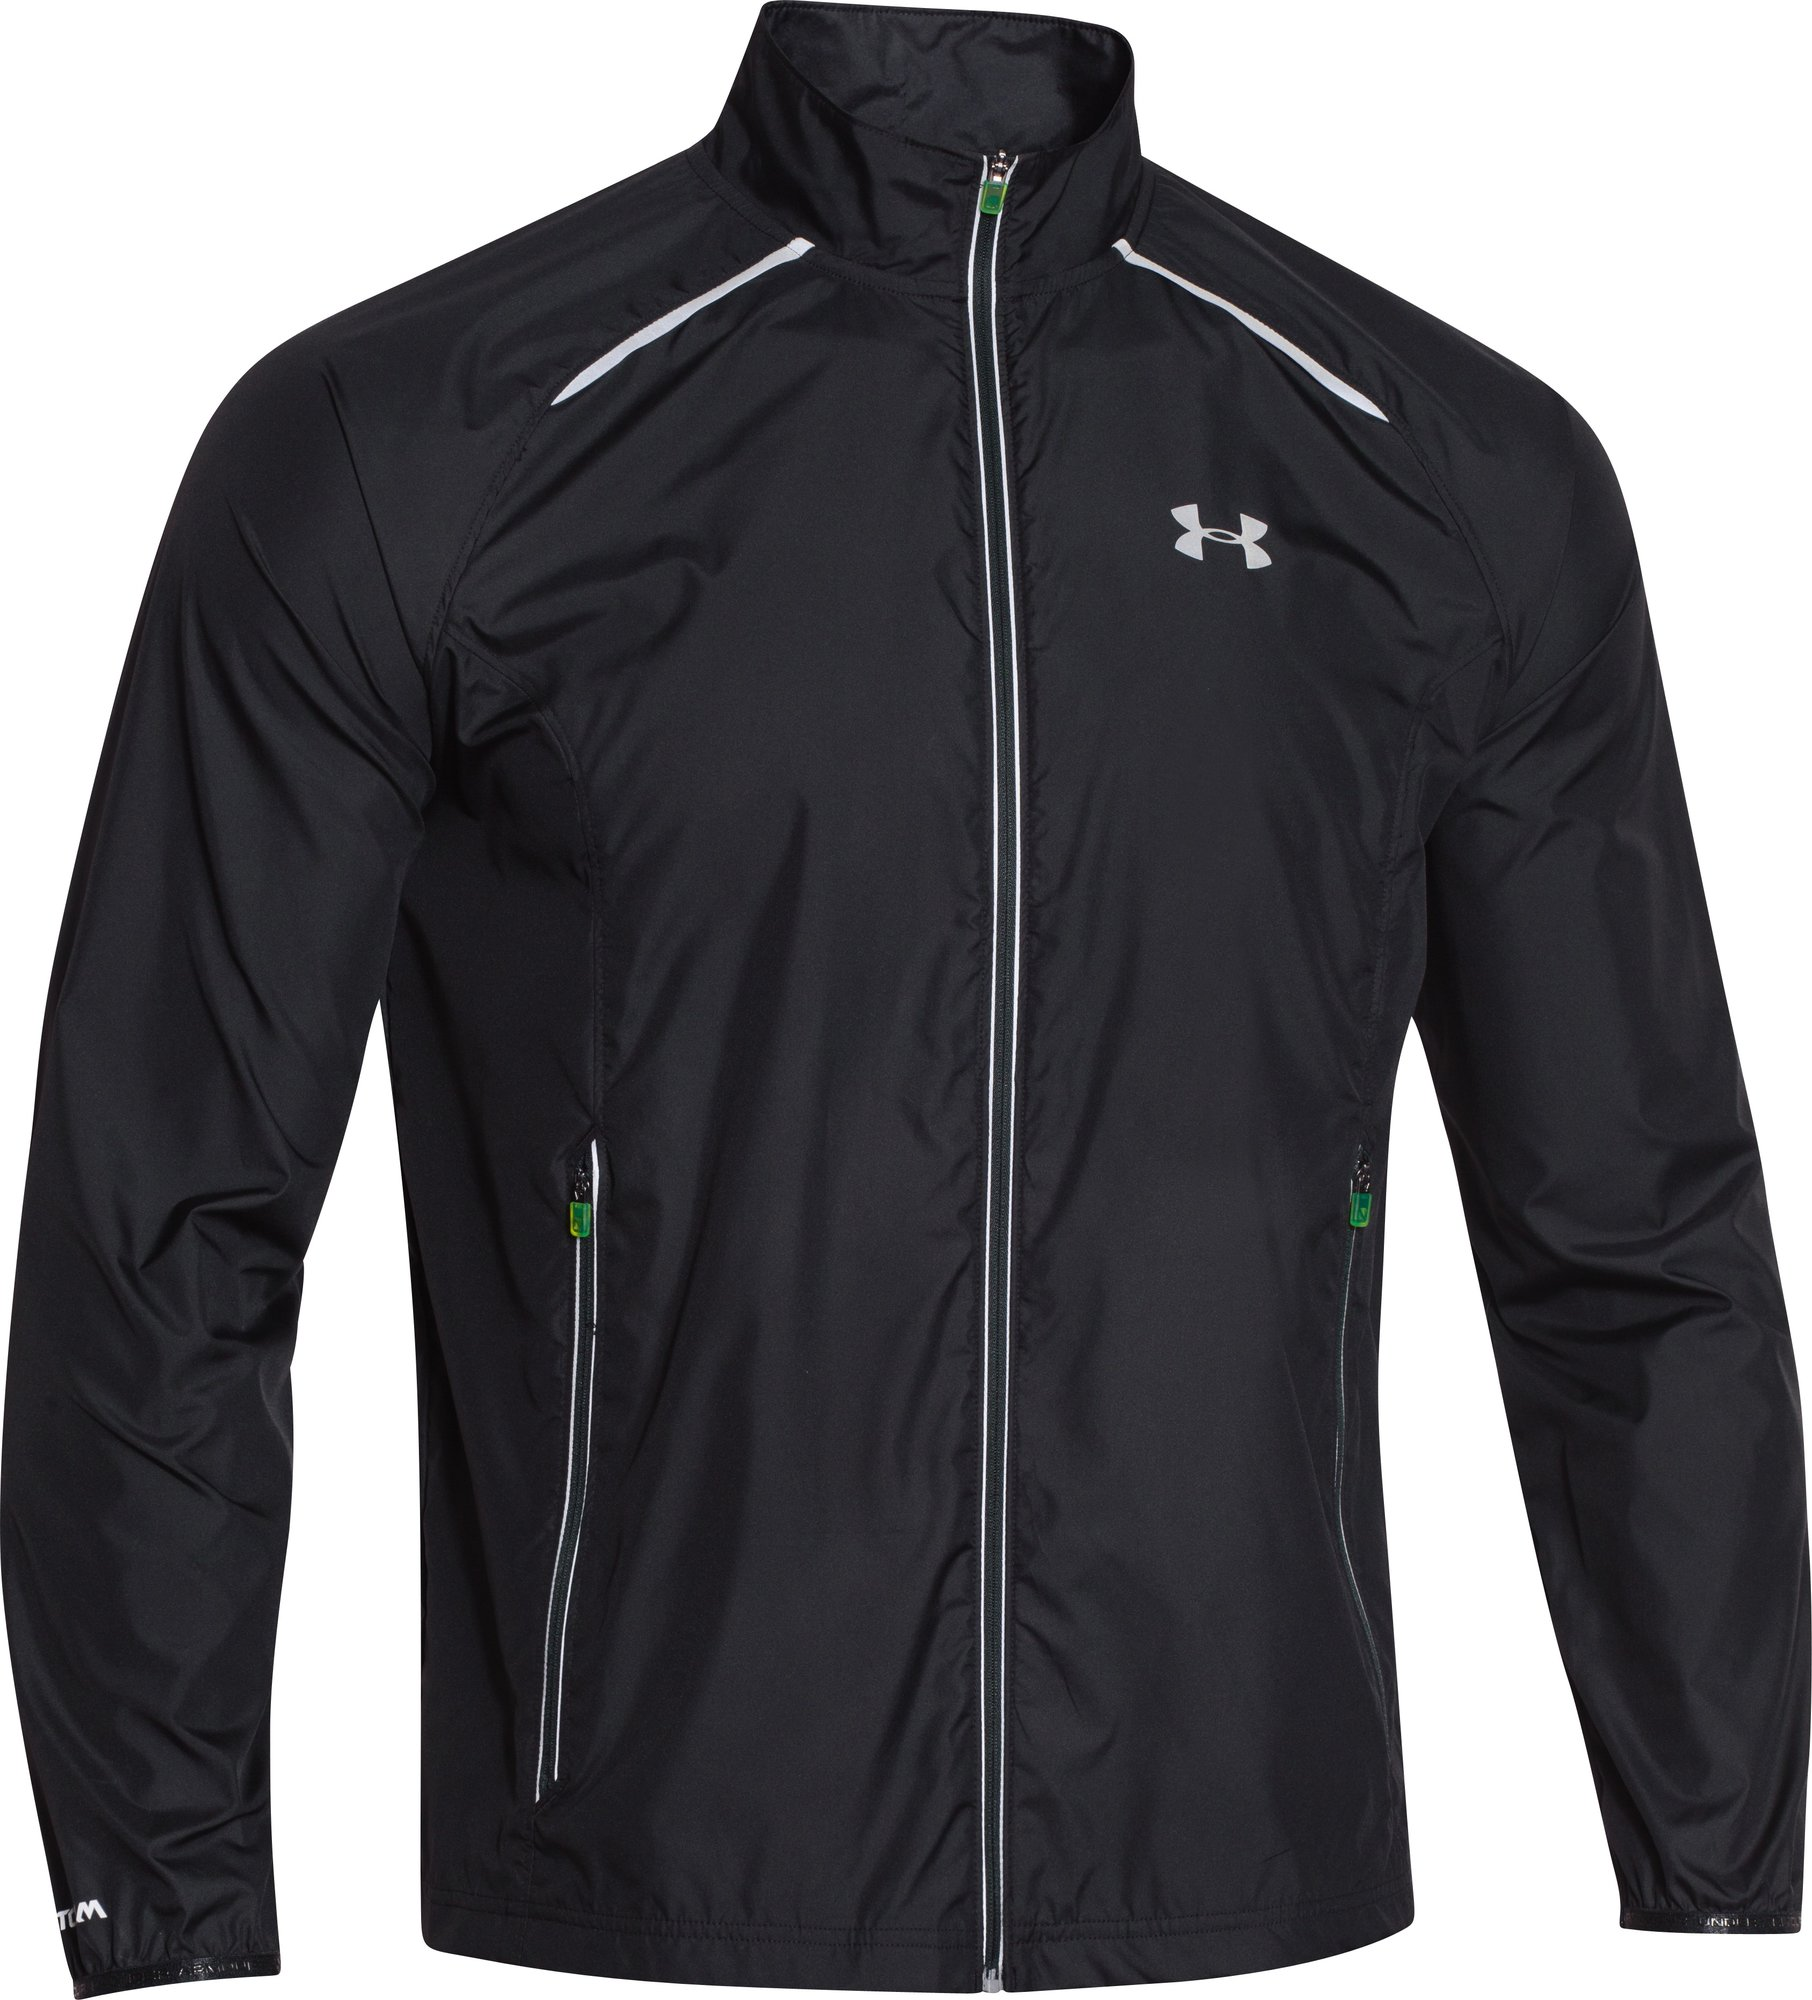 Under Armour Storm Launch Run Jacket in Schwarz